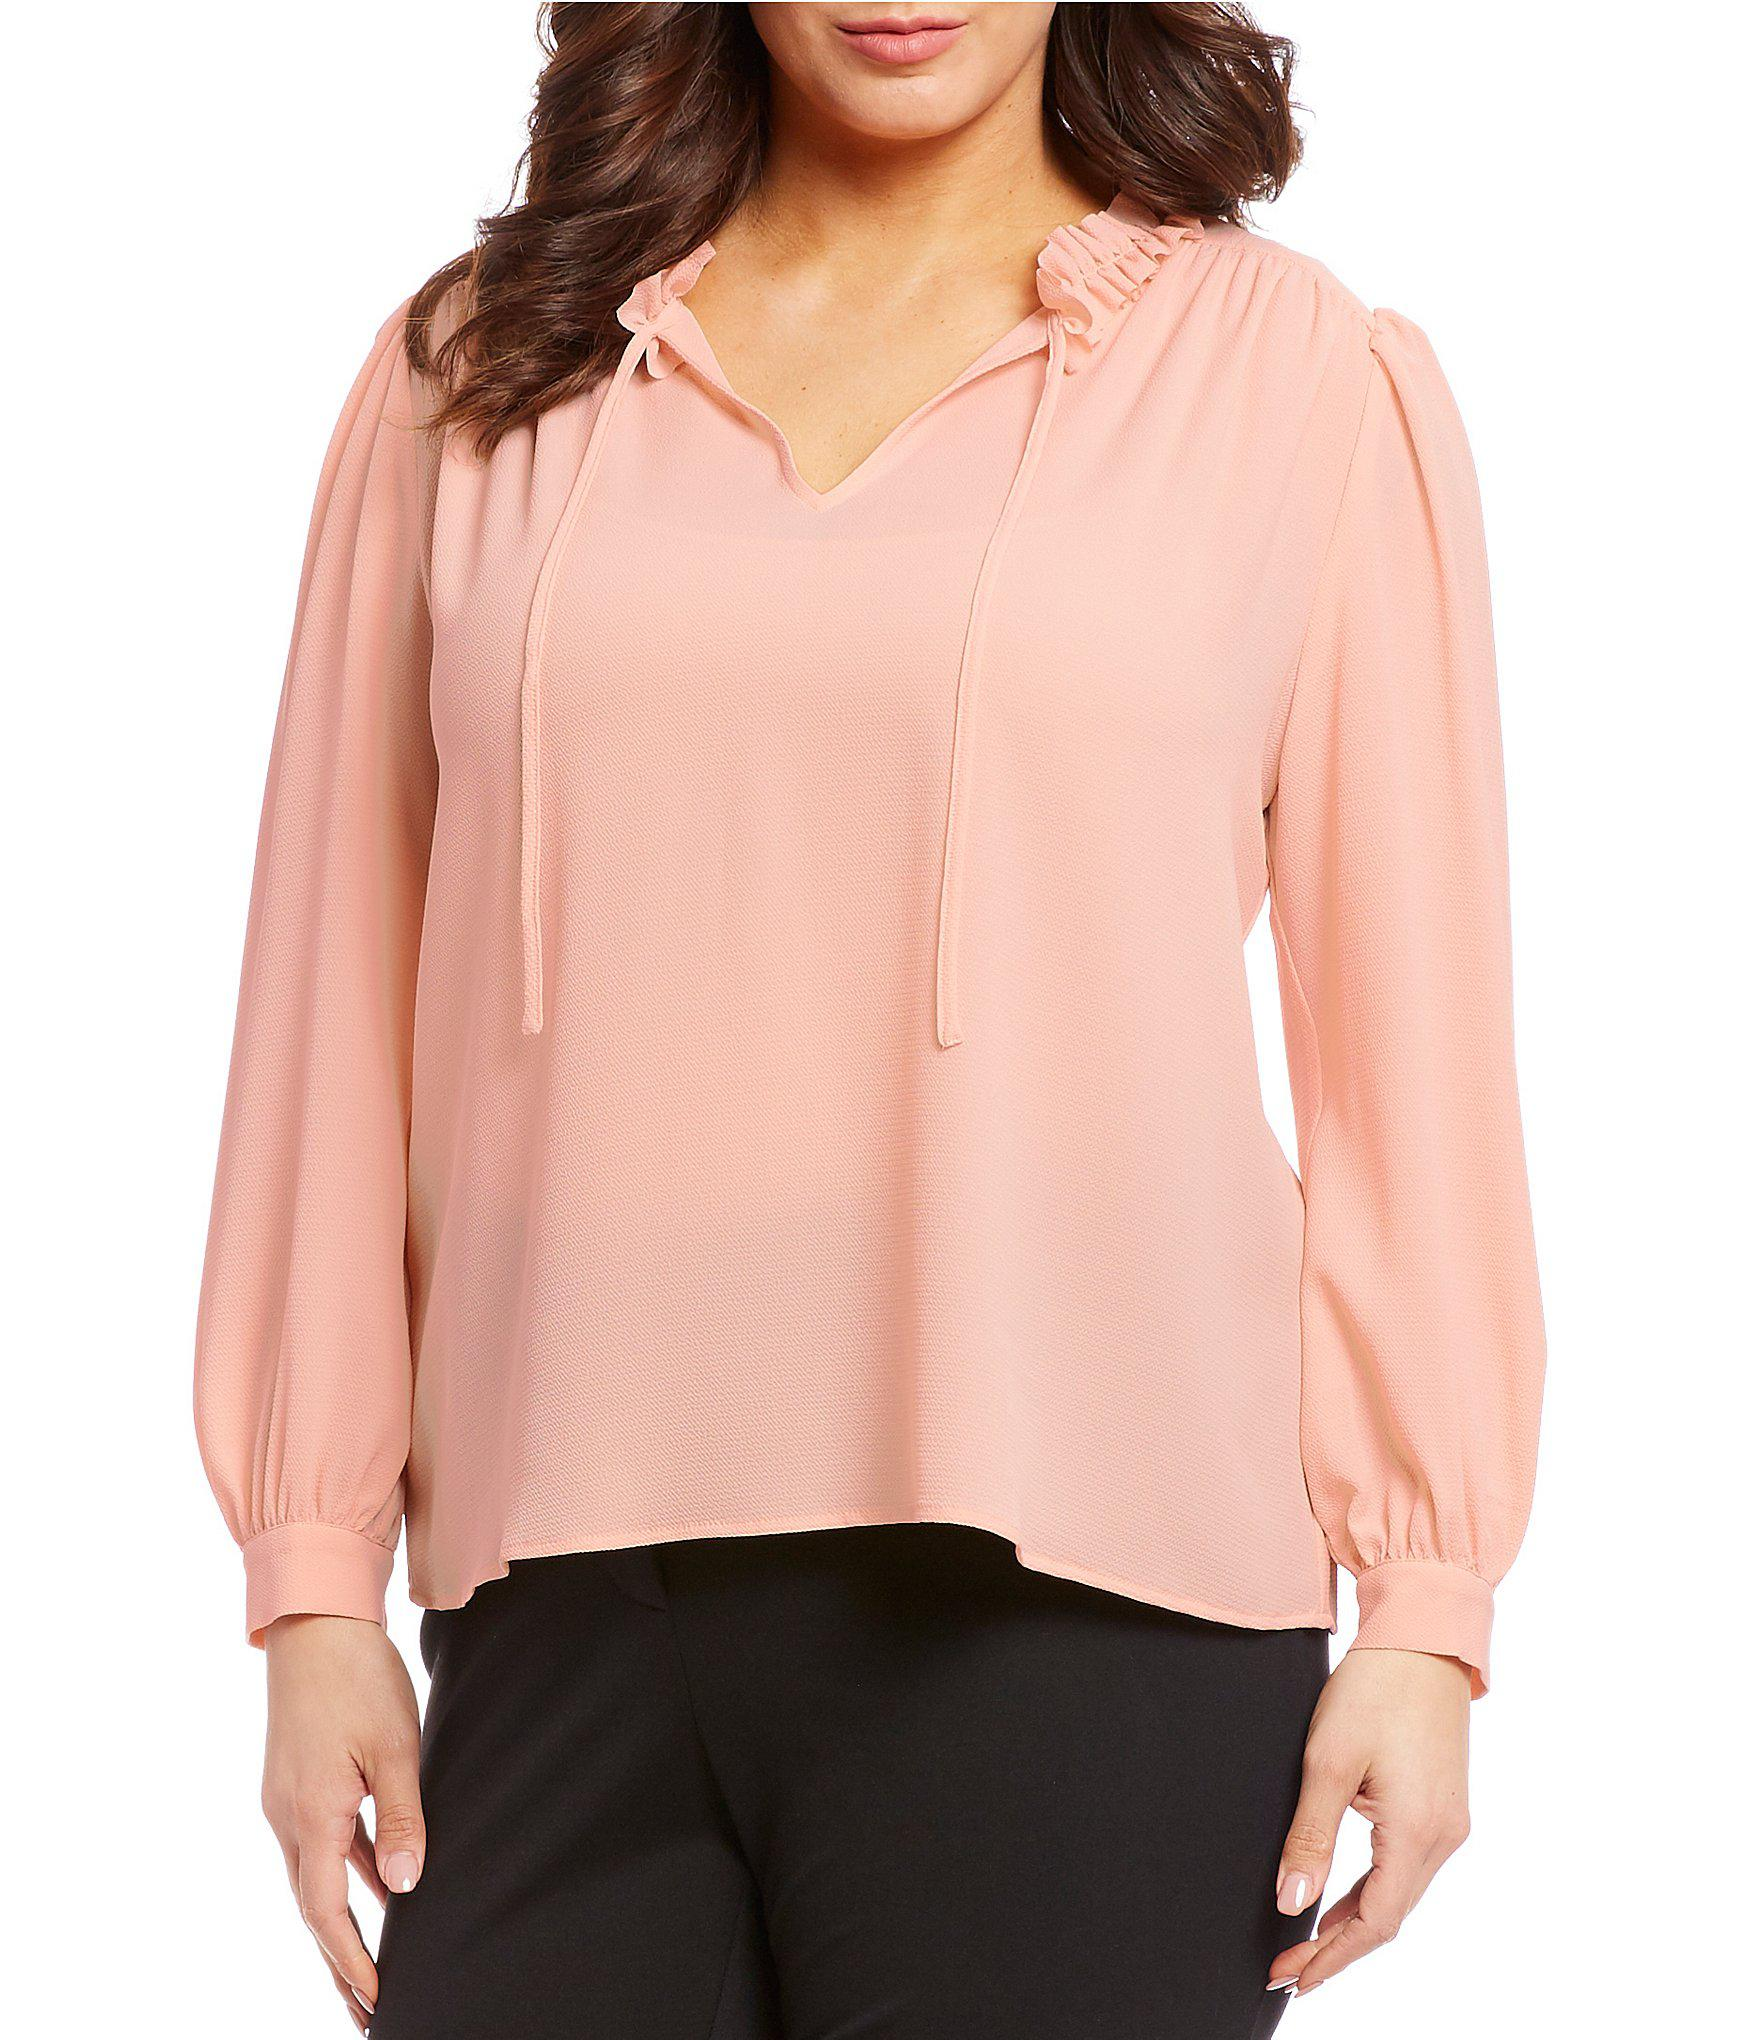 d87e3402ebb69 Lyst - Cece Plus Size Long Sleeve Tie-neck Blouse in Pink